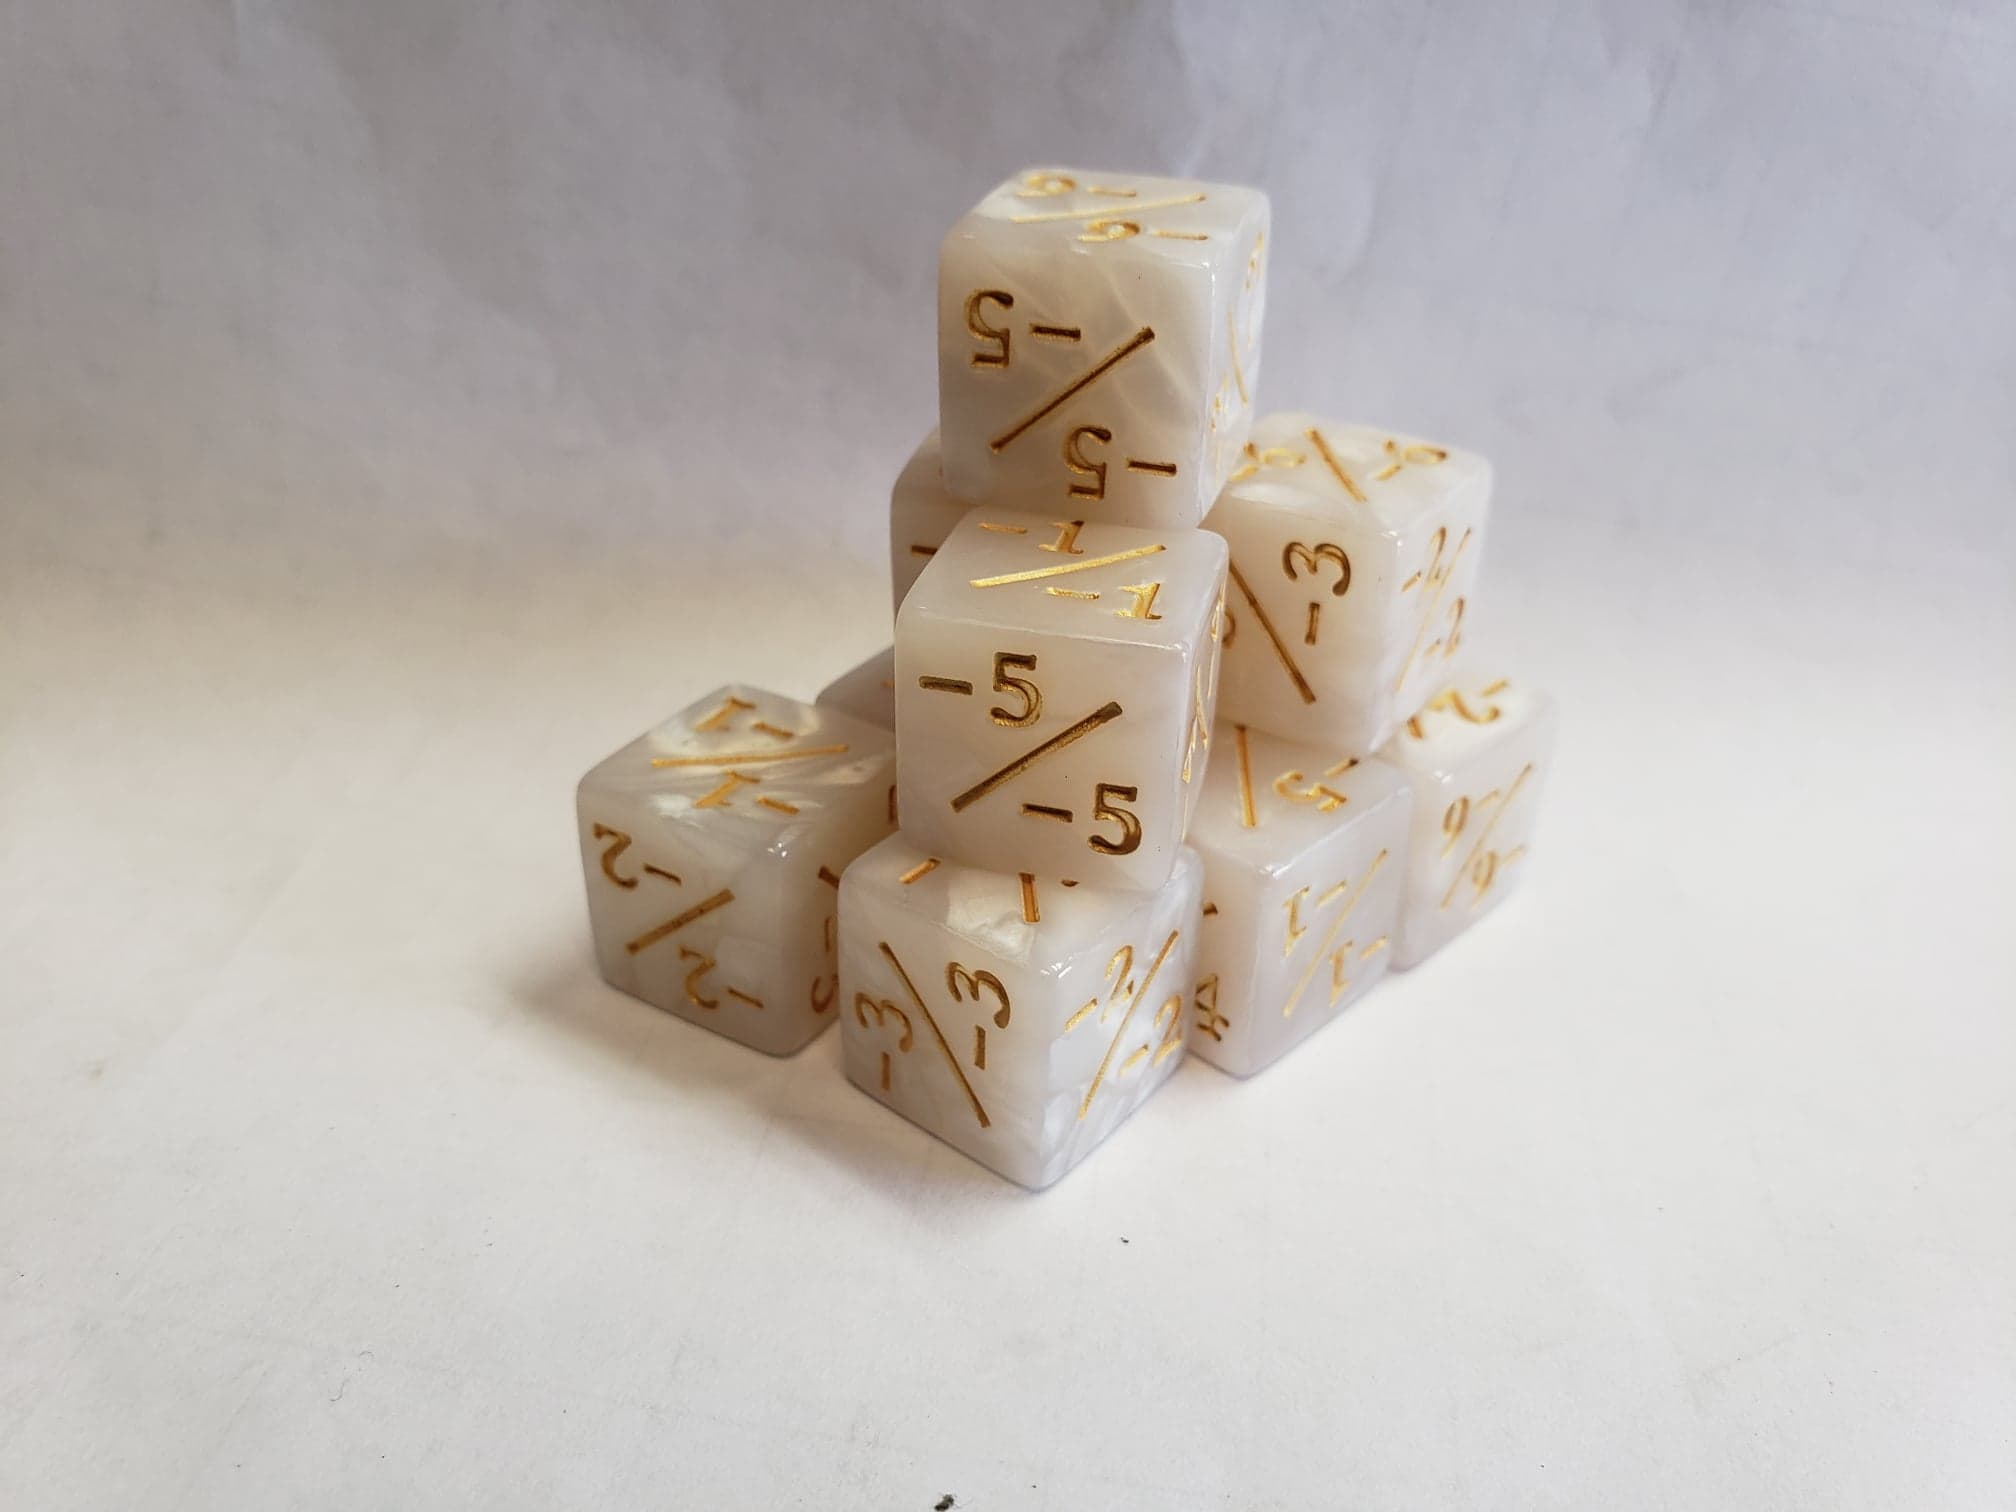 -1/-1 Counter dice